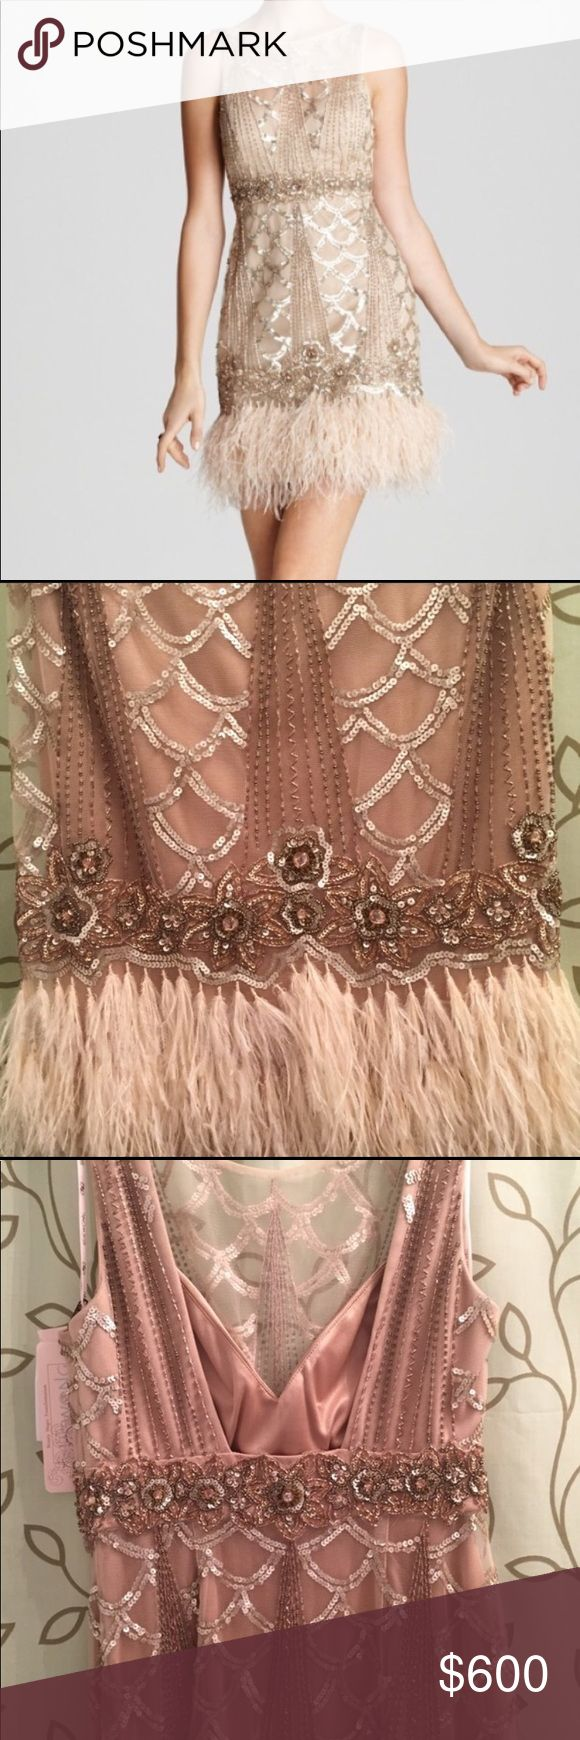 NWT beaded, feathered Sue Wong Gatsby Dress Sz 2, Gorgeous champagne Sue Wong dress, Gatsby inspired, with intricate beading throughout and ostrich feathers at the hem. Mini-length and form-fitting. Art Deco details at the neck. Never worn, new with tags. Sue Wong Dresses Wedding